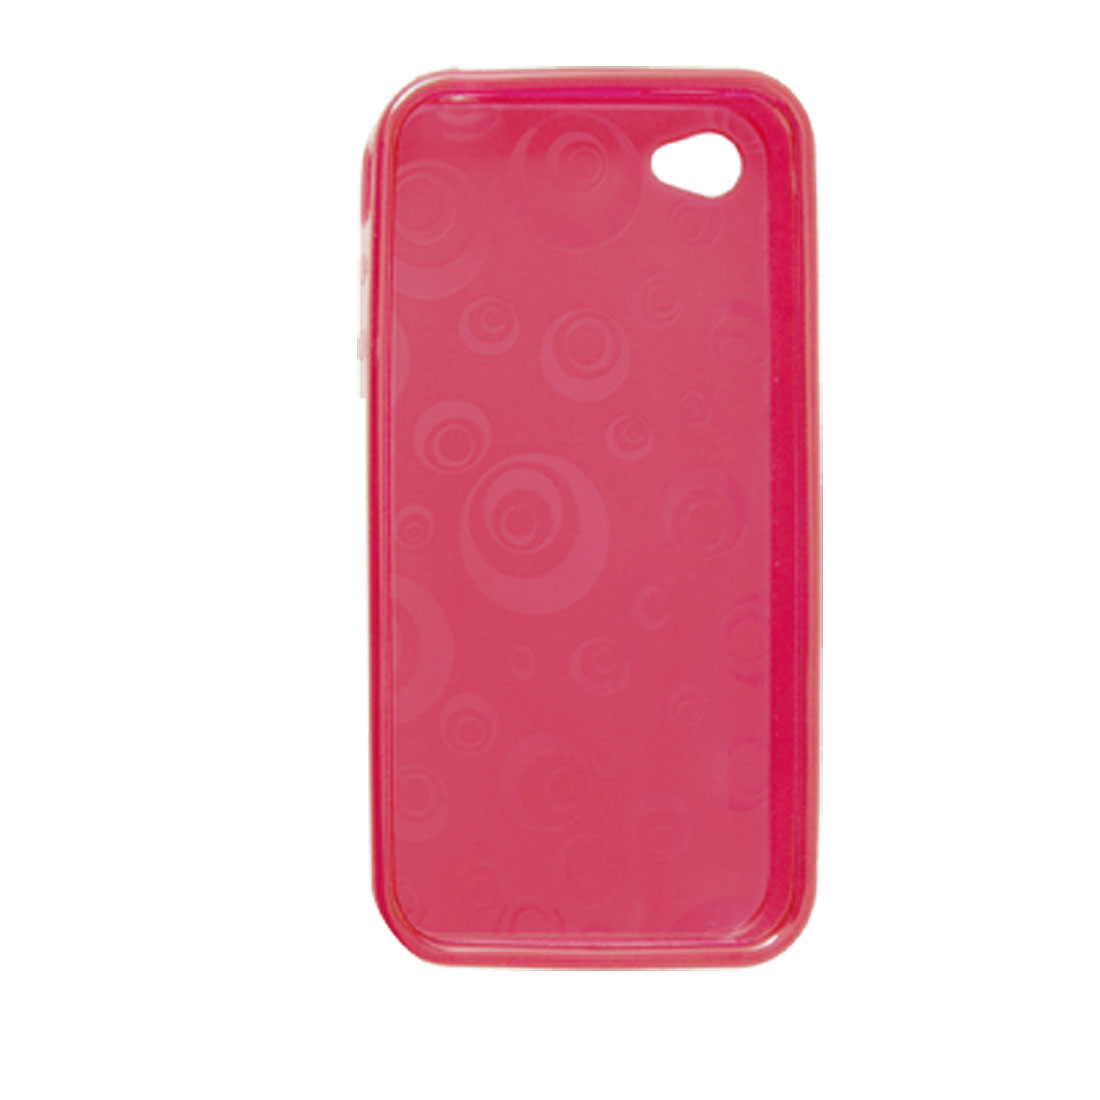 Red Circles TPU Soft Plastic Case for iPhone 4 4G